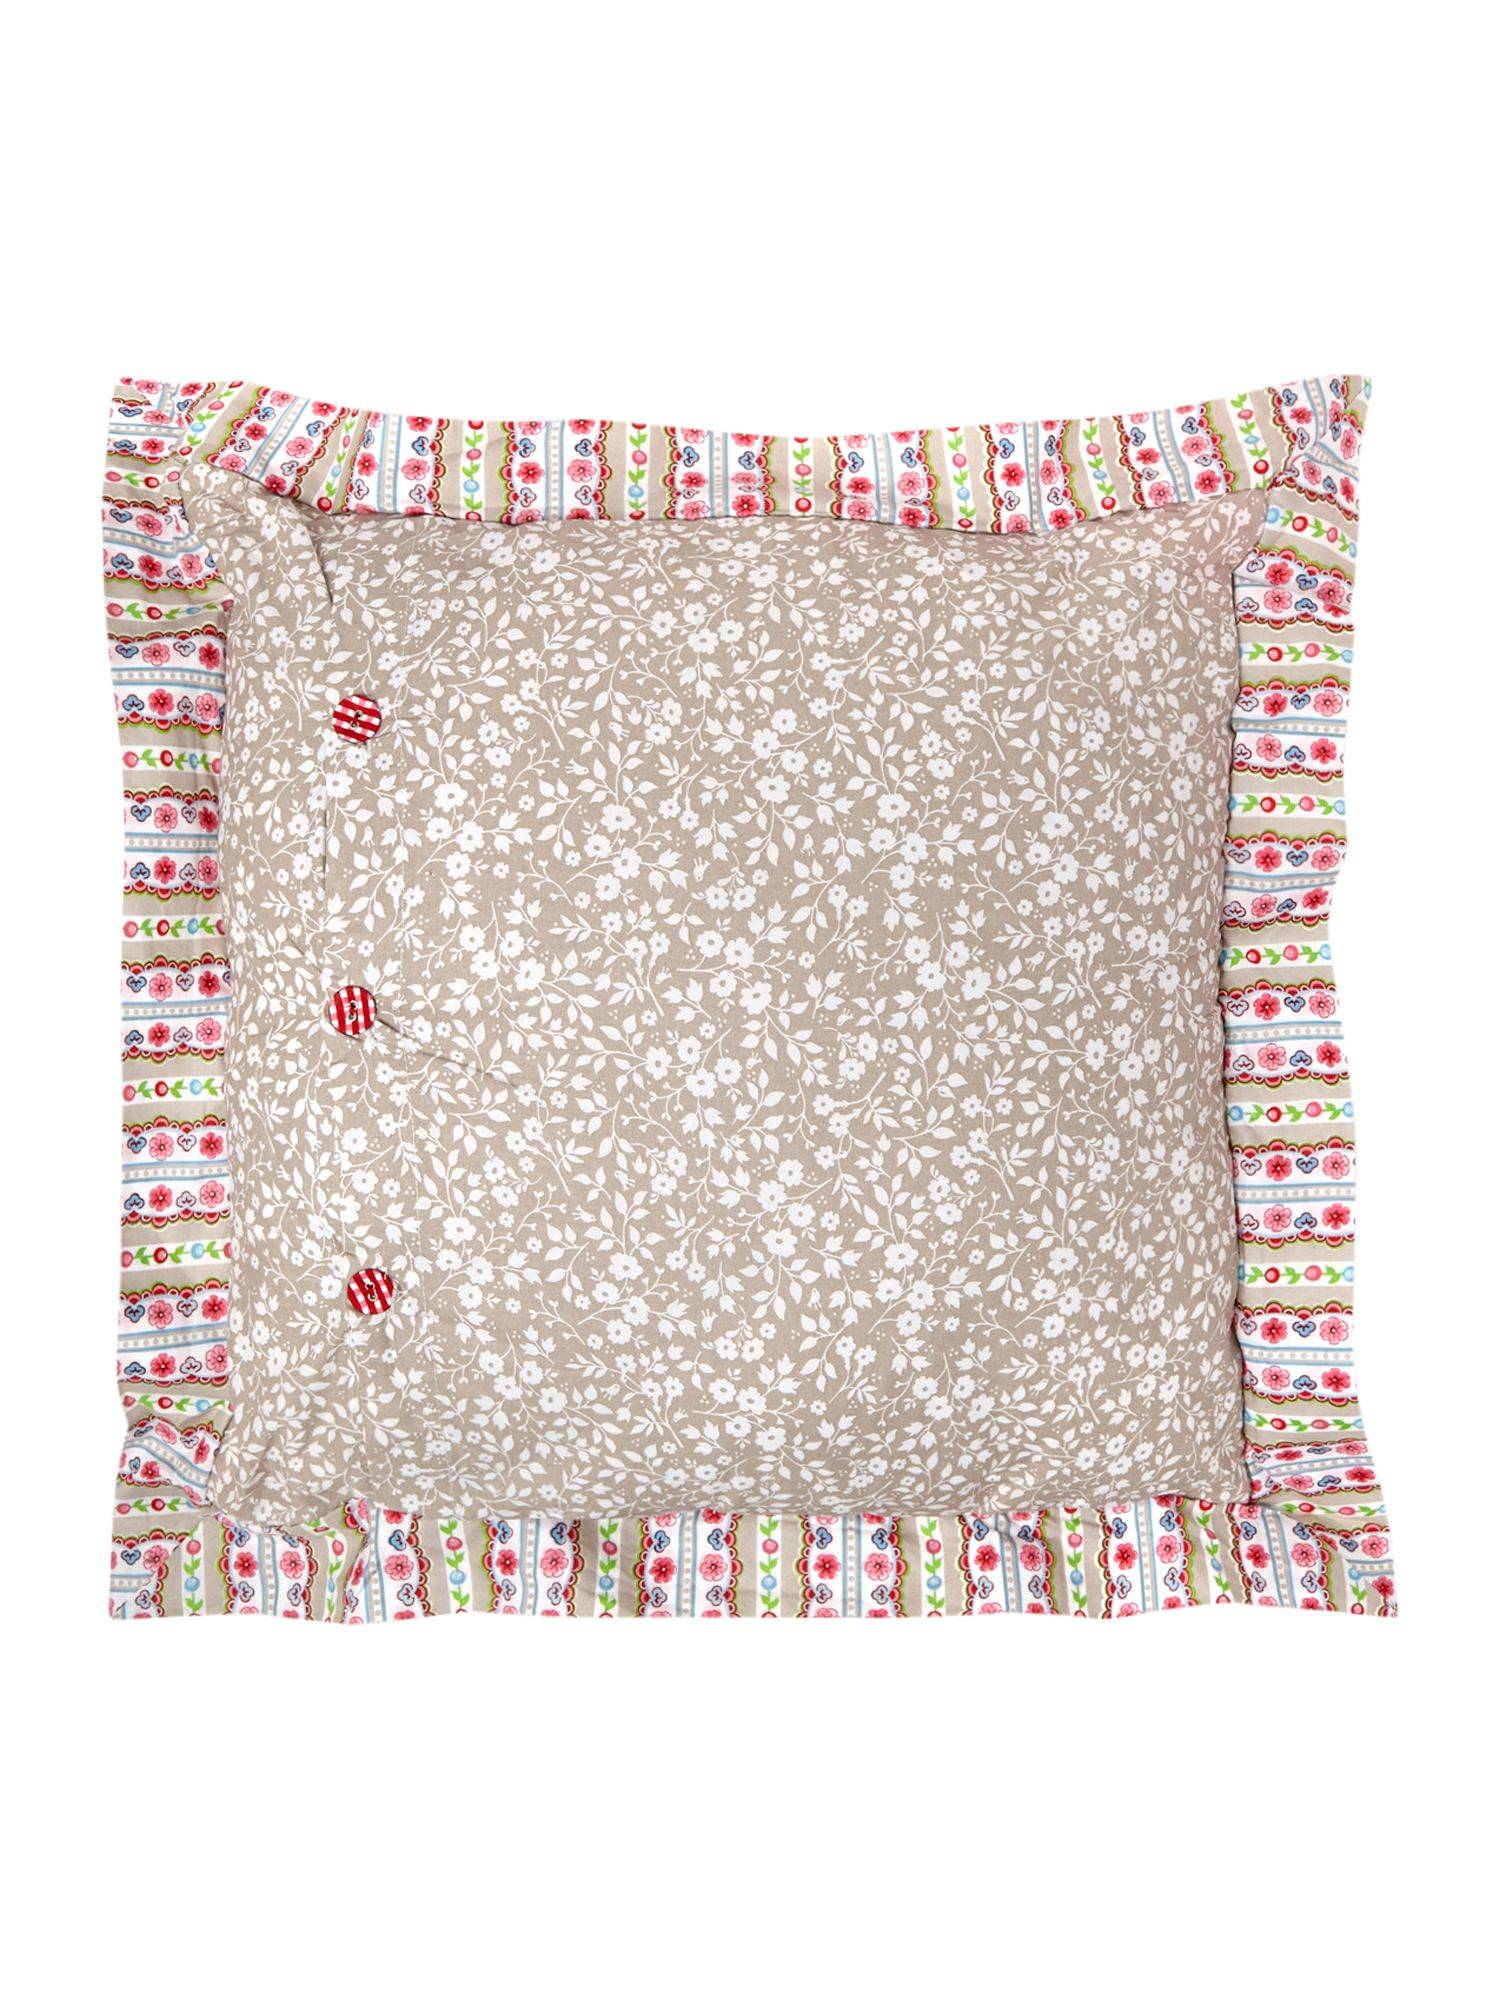 Flowers in the Mix square cushion